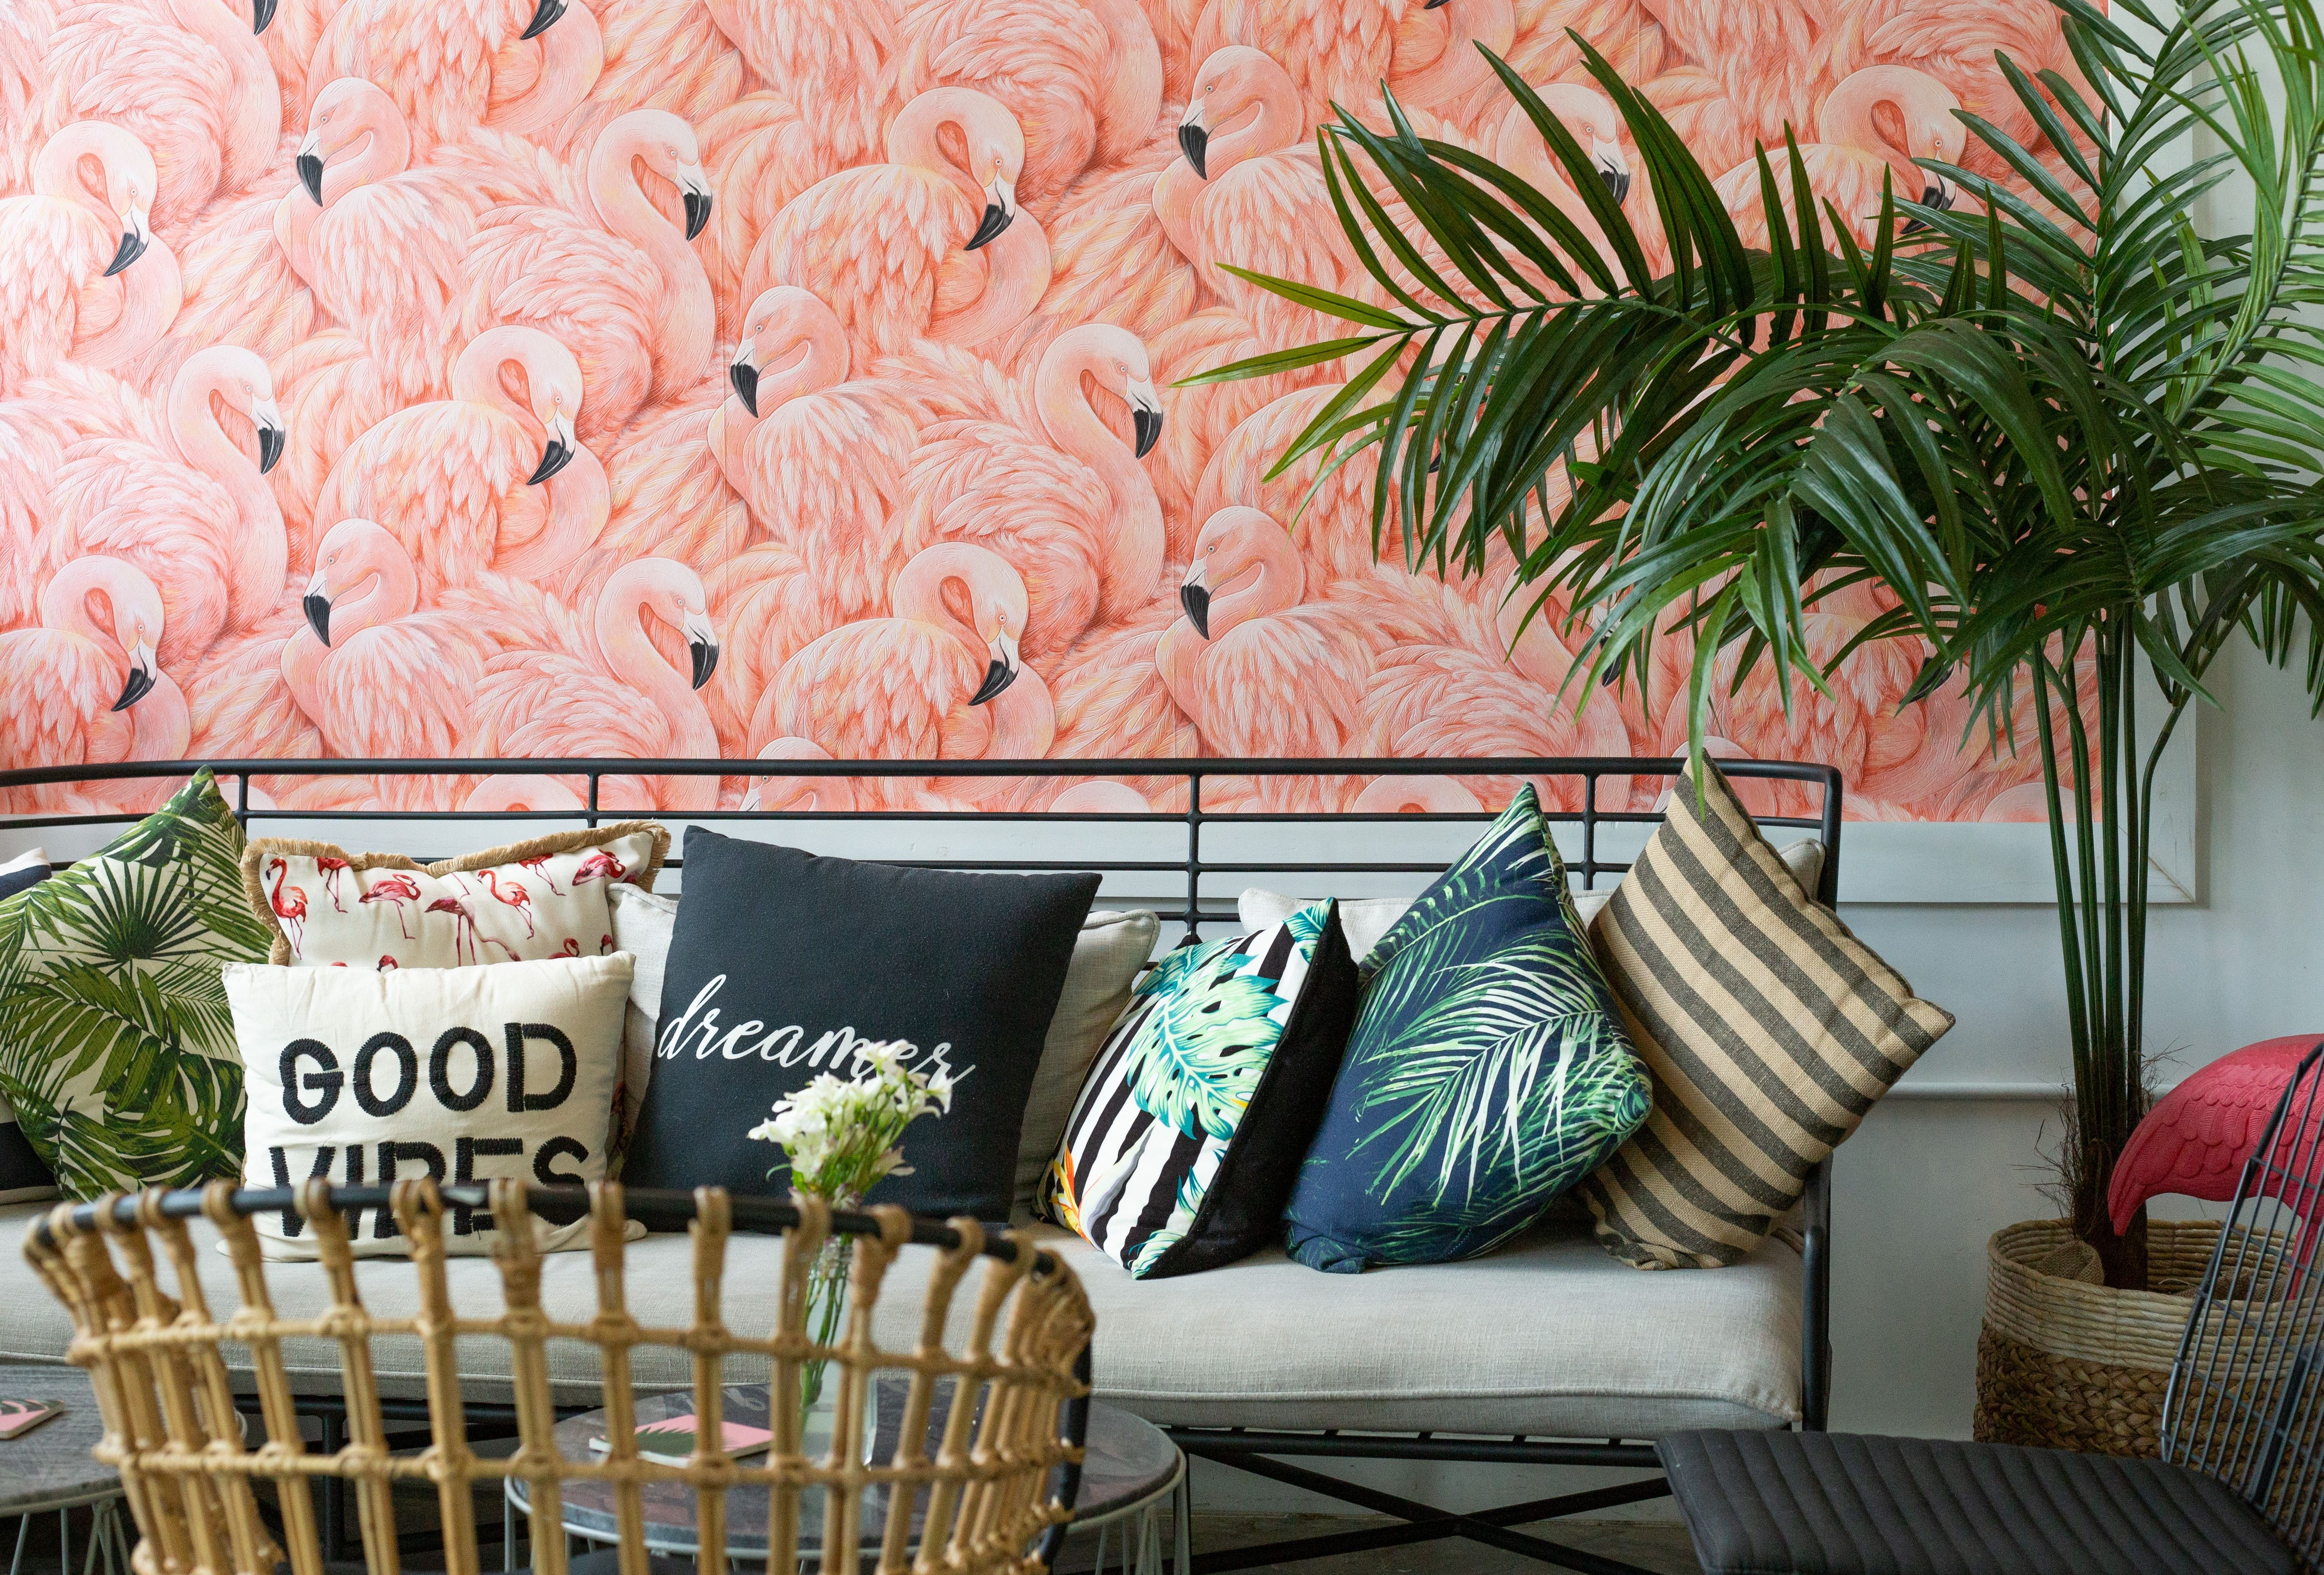 Dreamer Matcha And Acai In Miami Beach Be Sure To Check Out That Flamingo Wallpaper Too Flamingo Wallpaper The Dreamers Decor